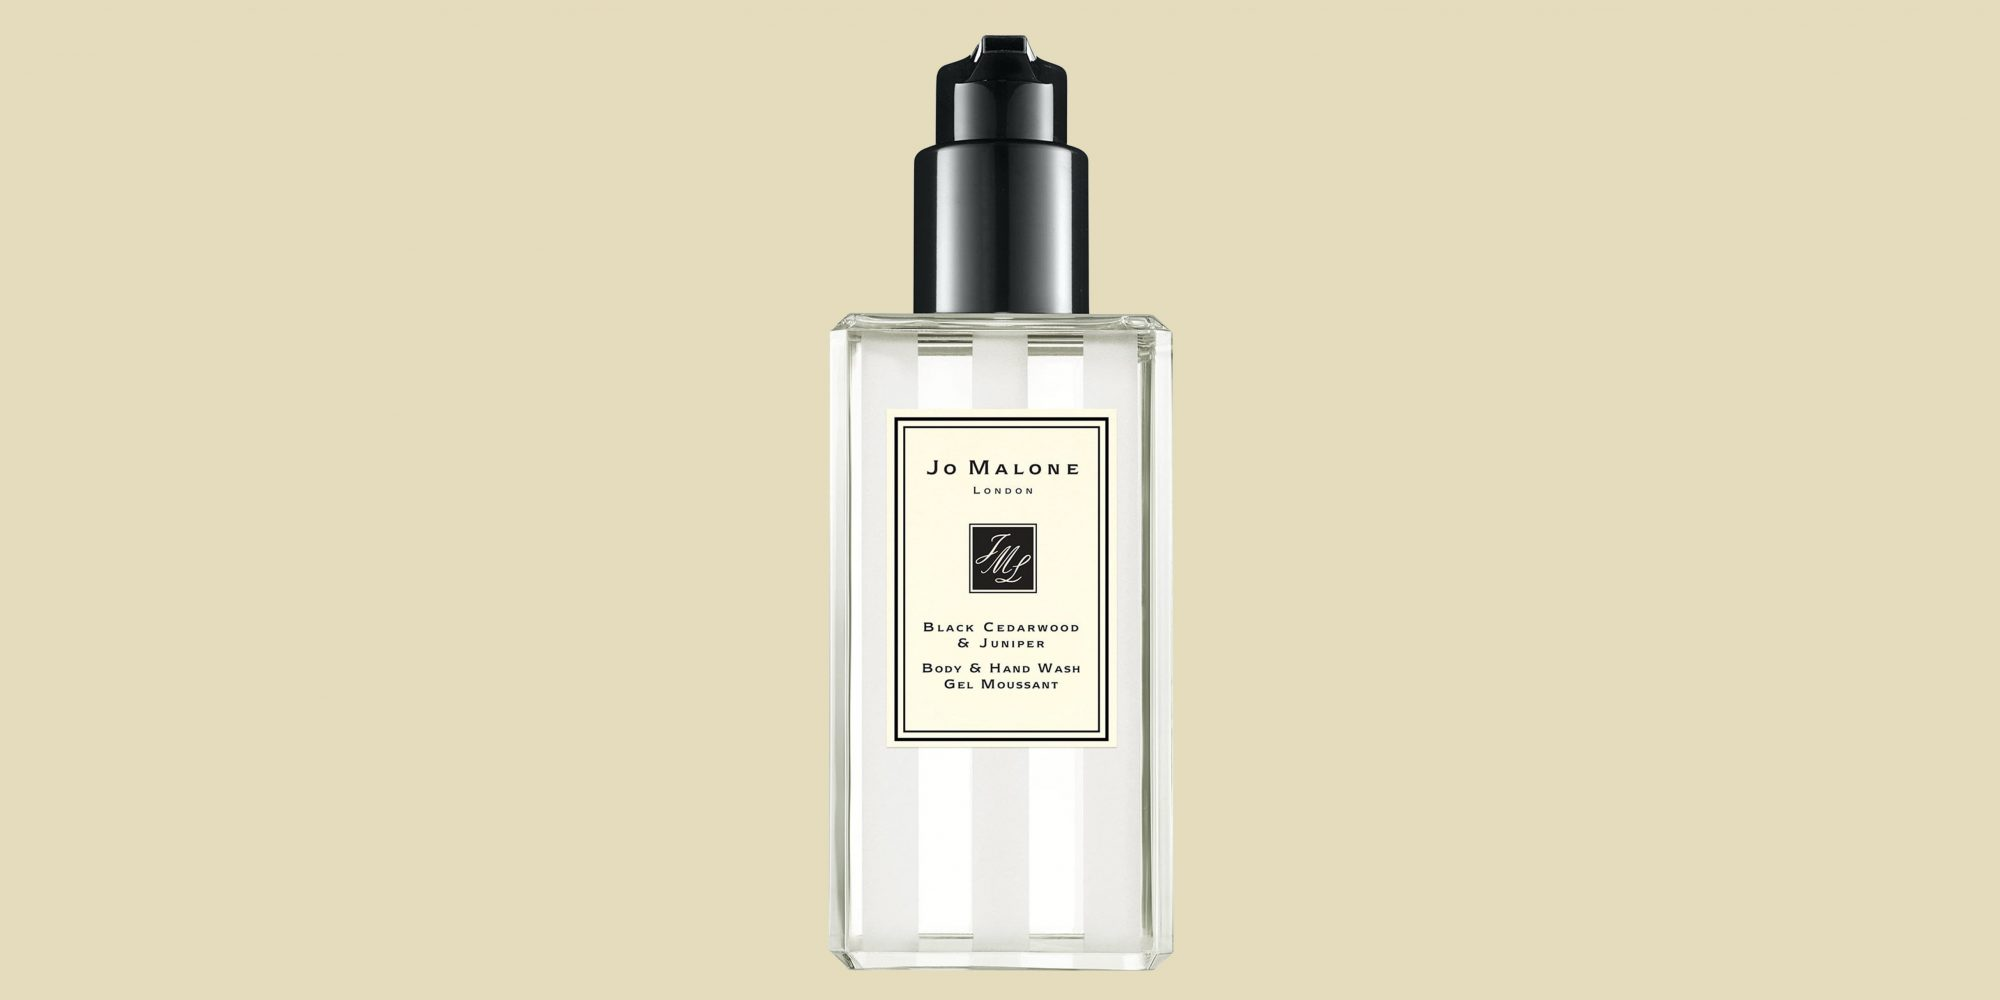 Jo Malone Black Cedarwood and Juniper Body and Hand Wash